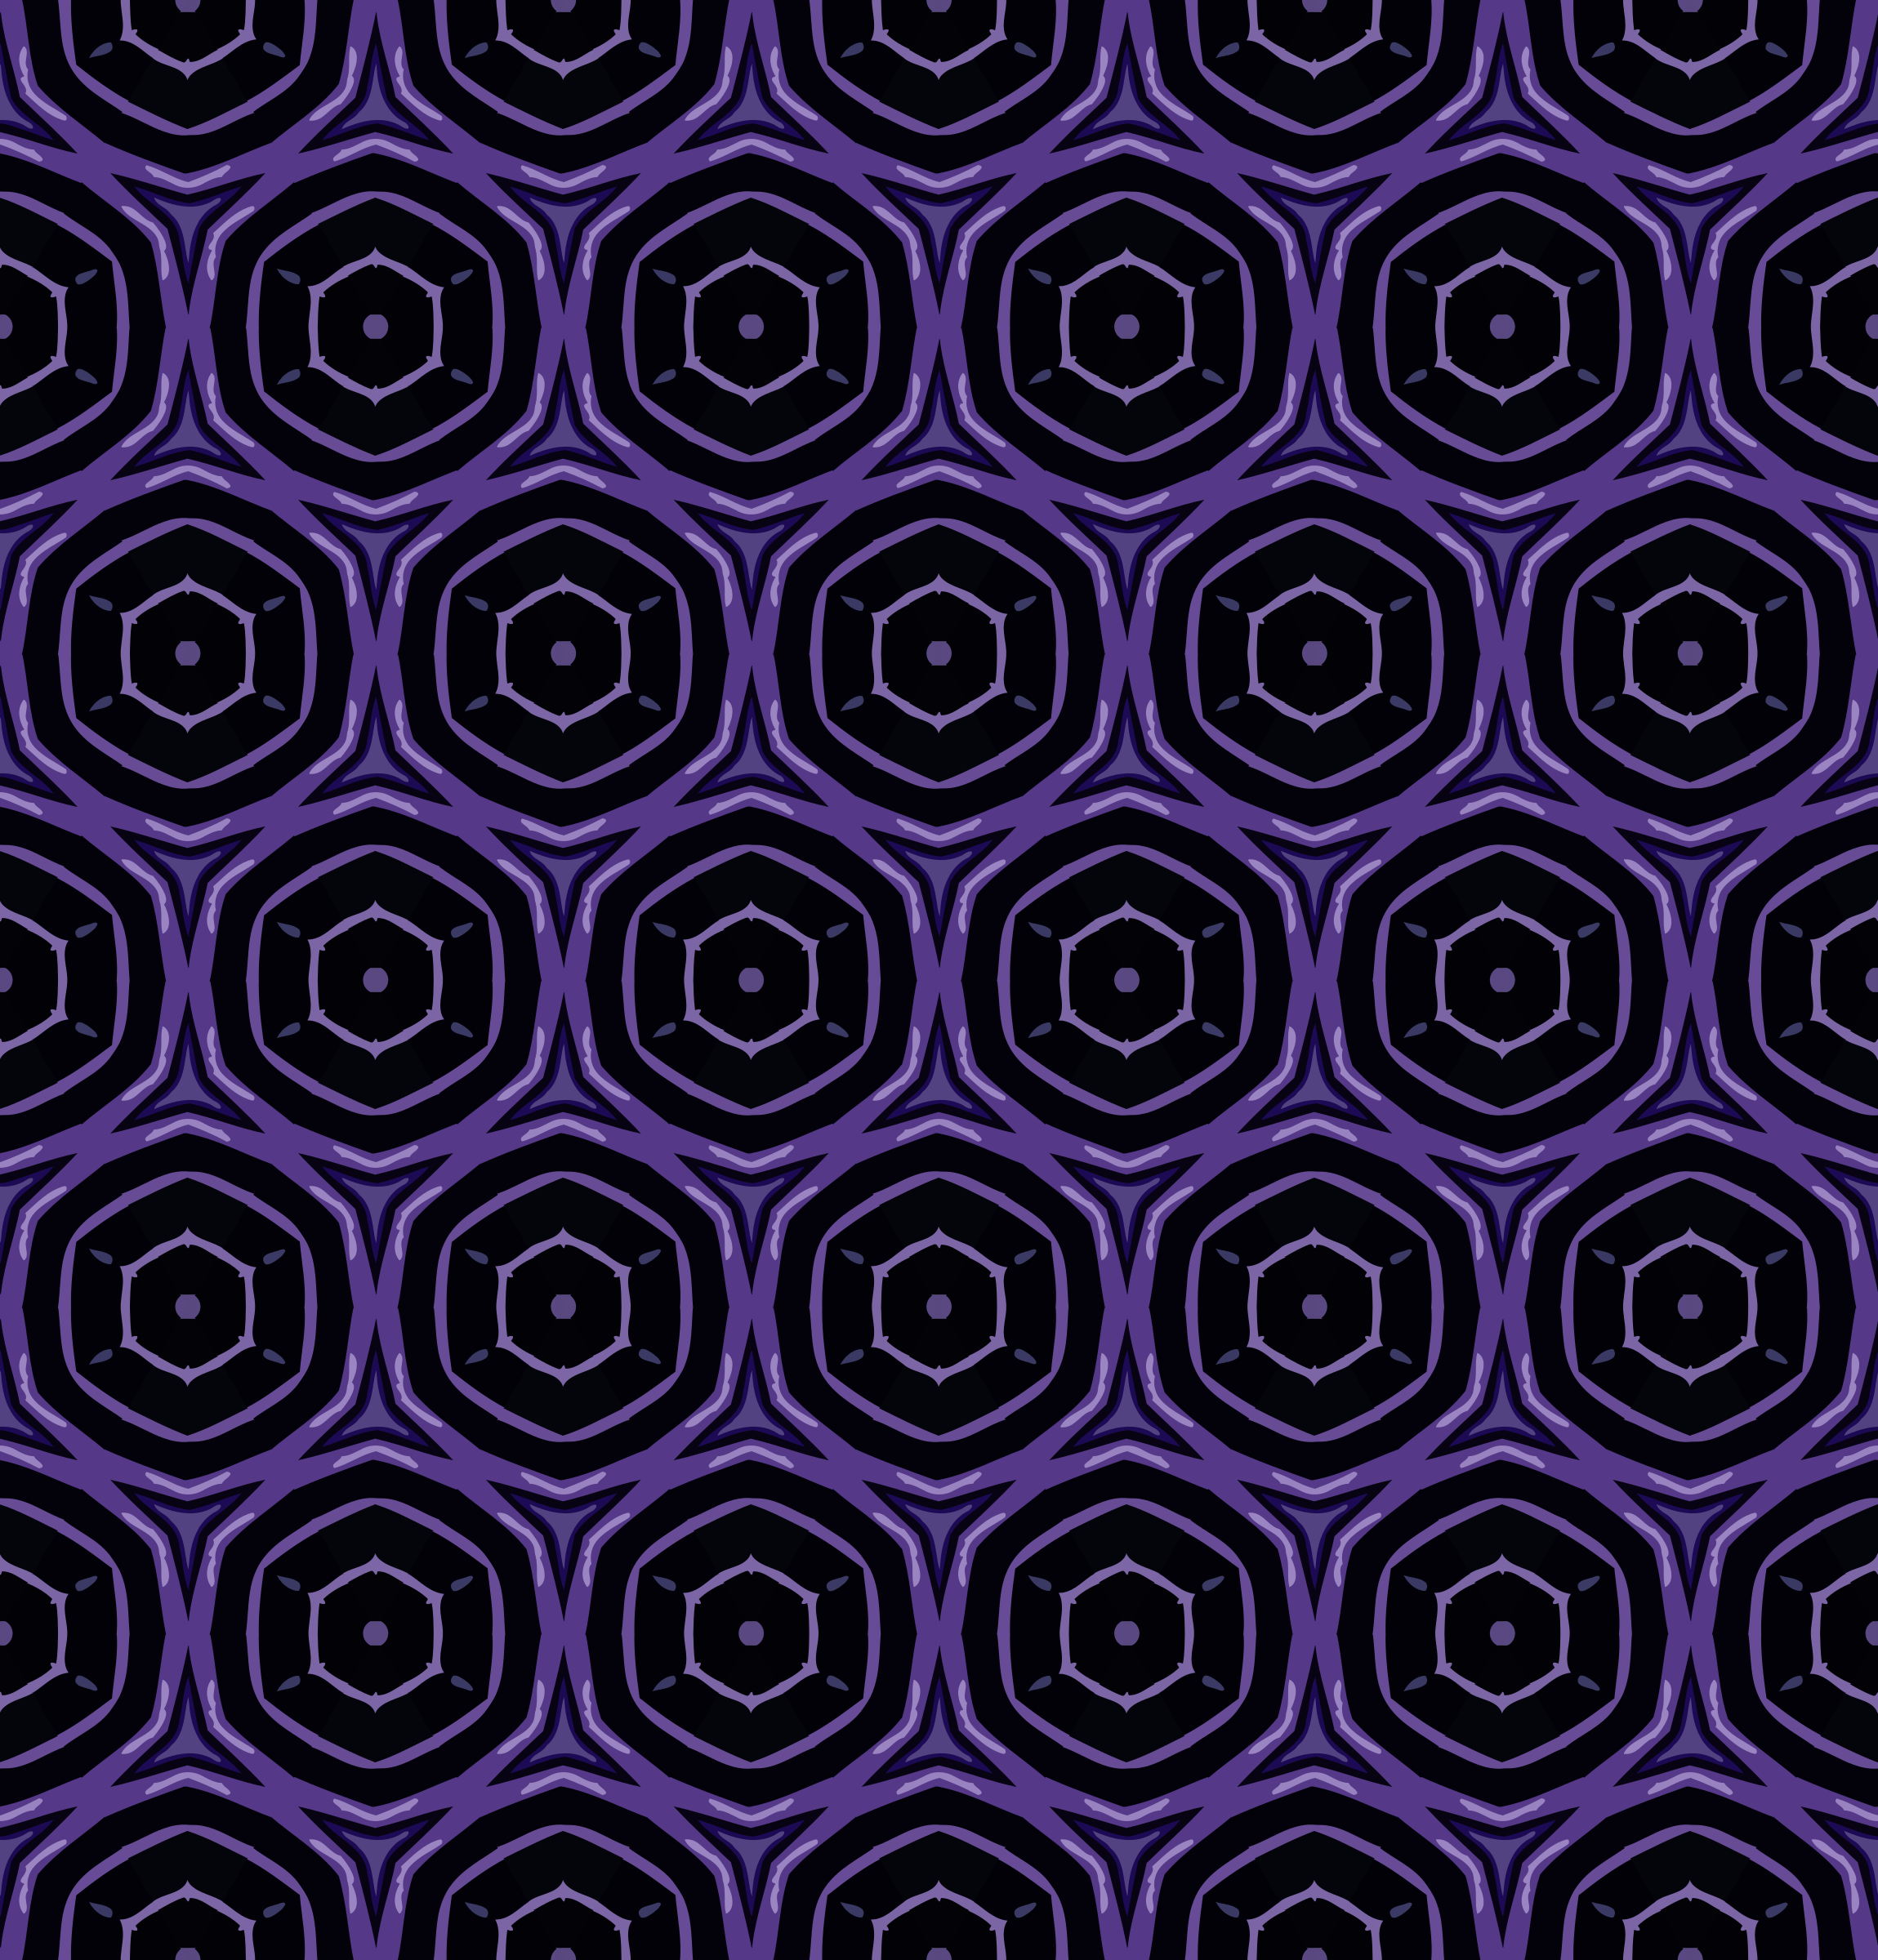 Background pattern 157 (colour 5) by Firkin